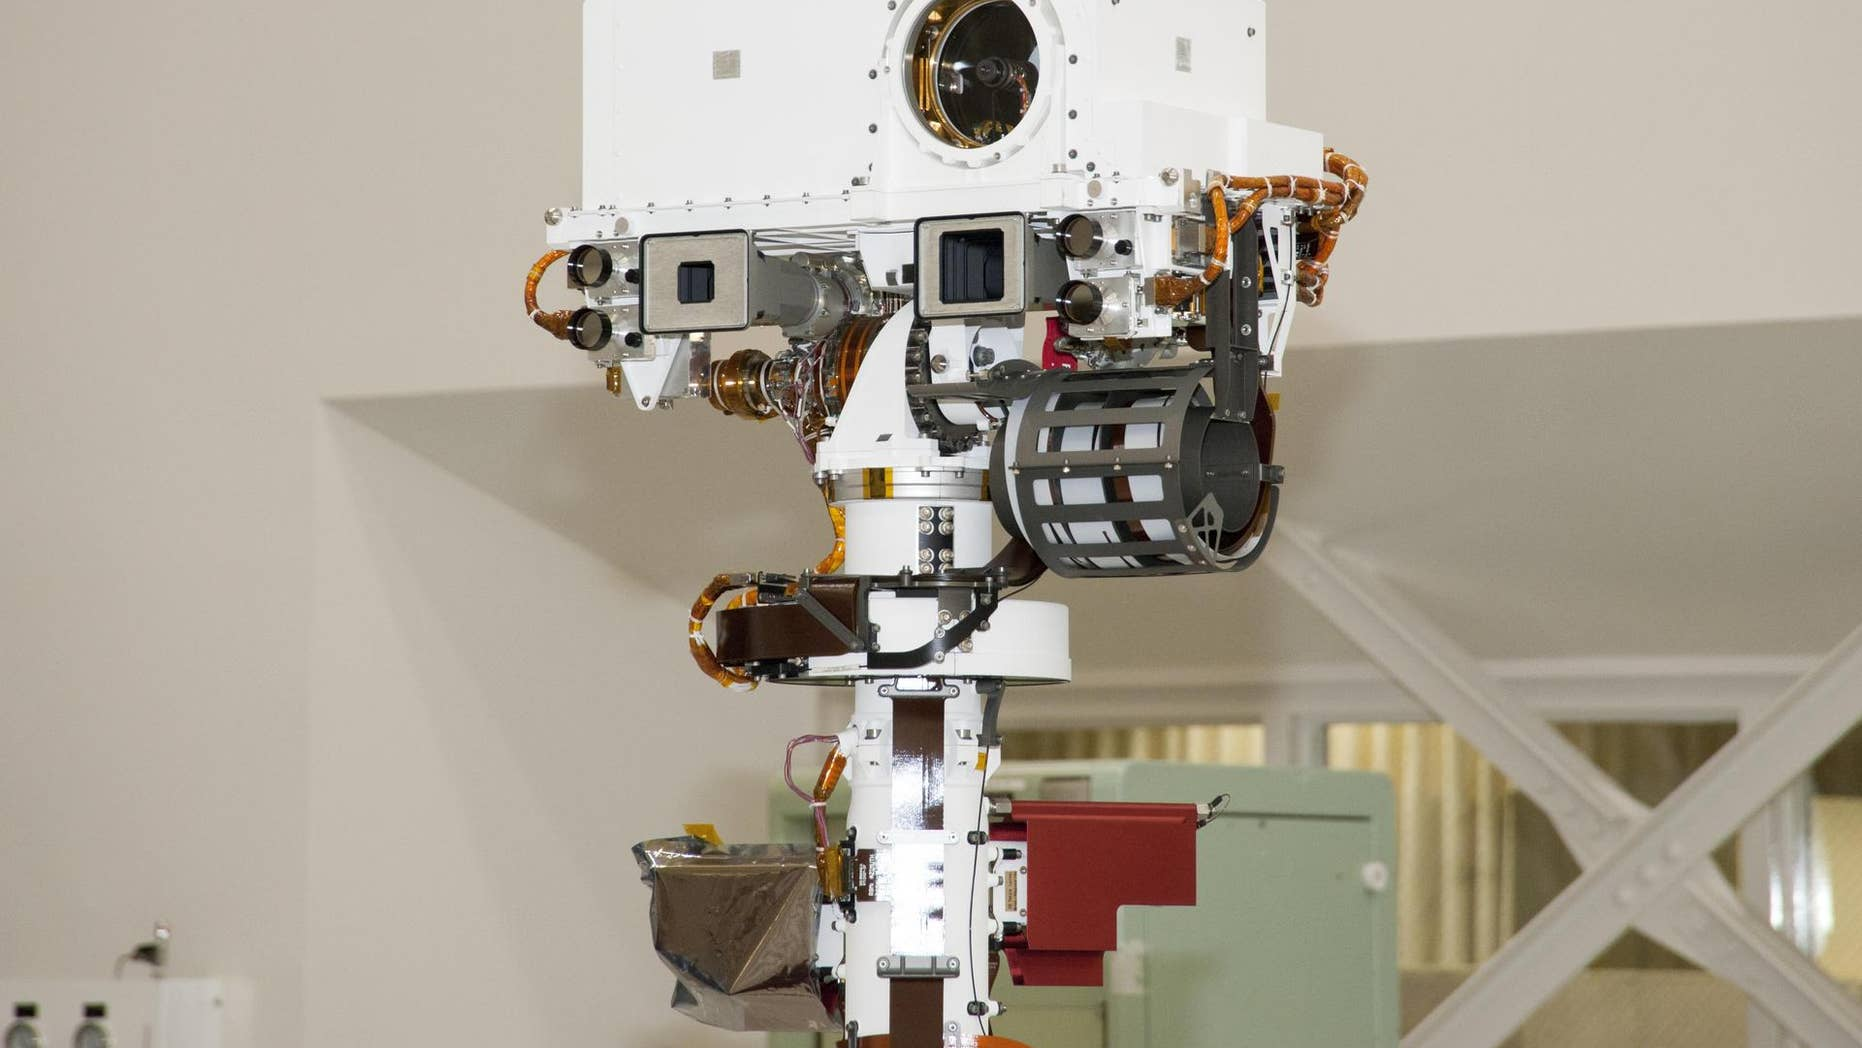 The remote sensing mast on NASA Mars rover Curiosity holds two science instruments for studying the rover surroundings and two stereo navigation cameras for use in driving the rover and planning rover activities.